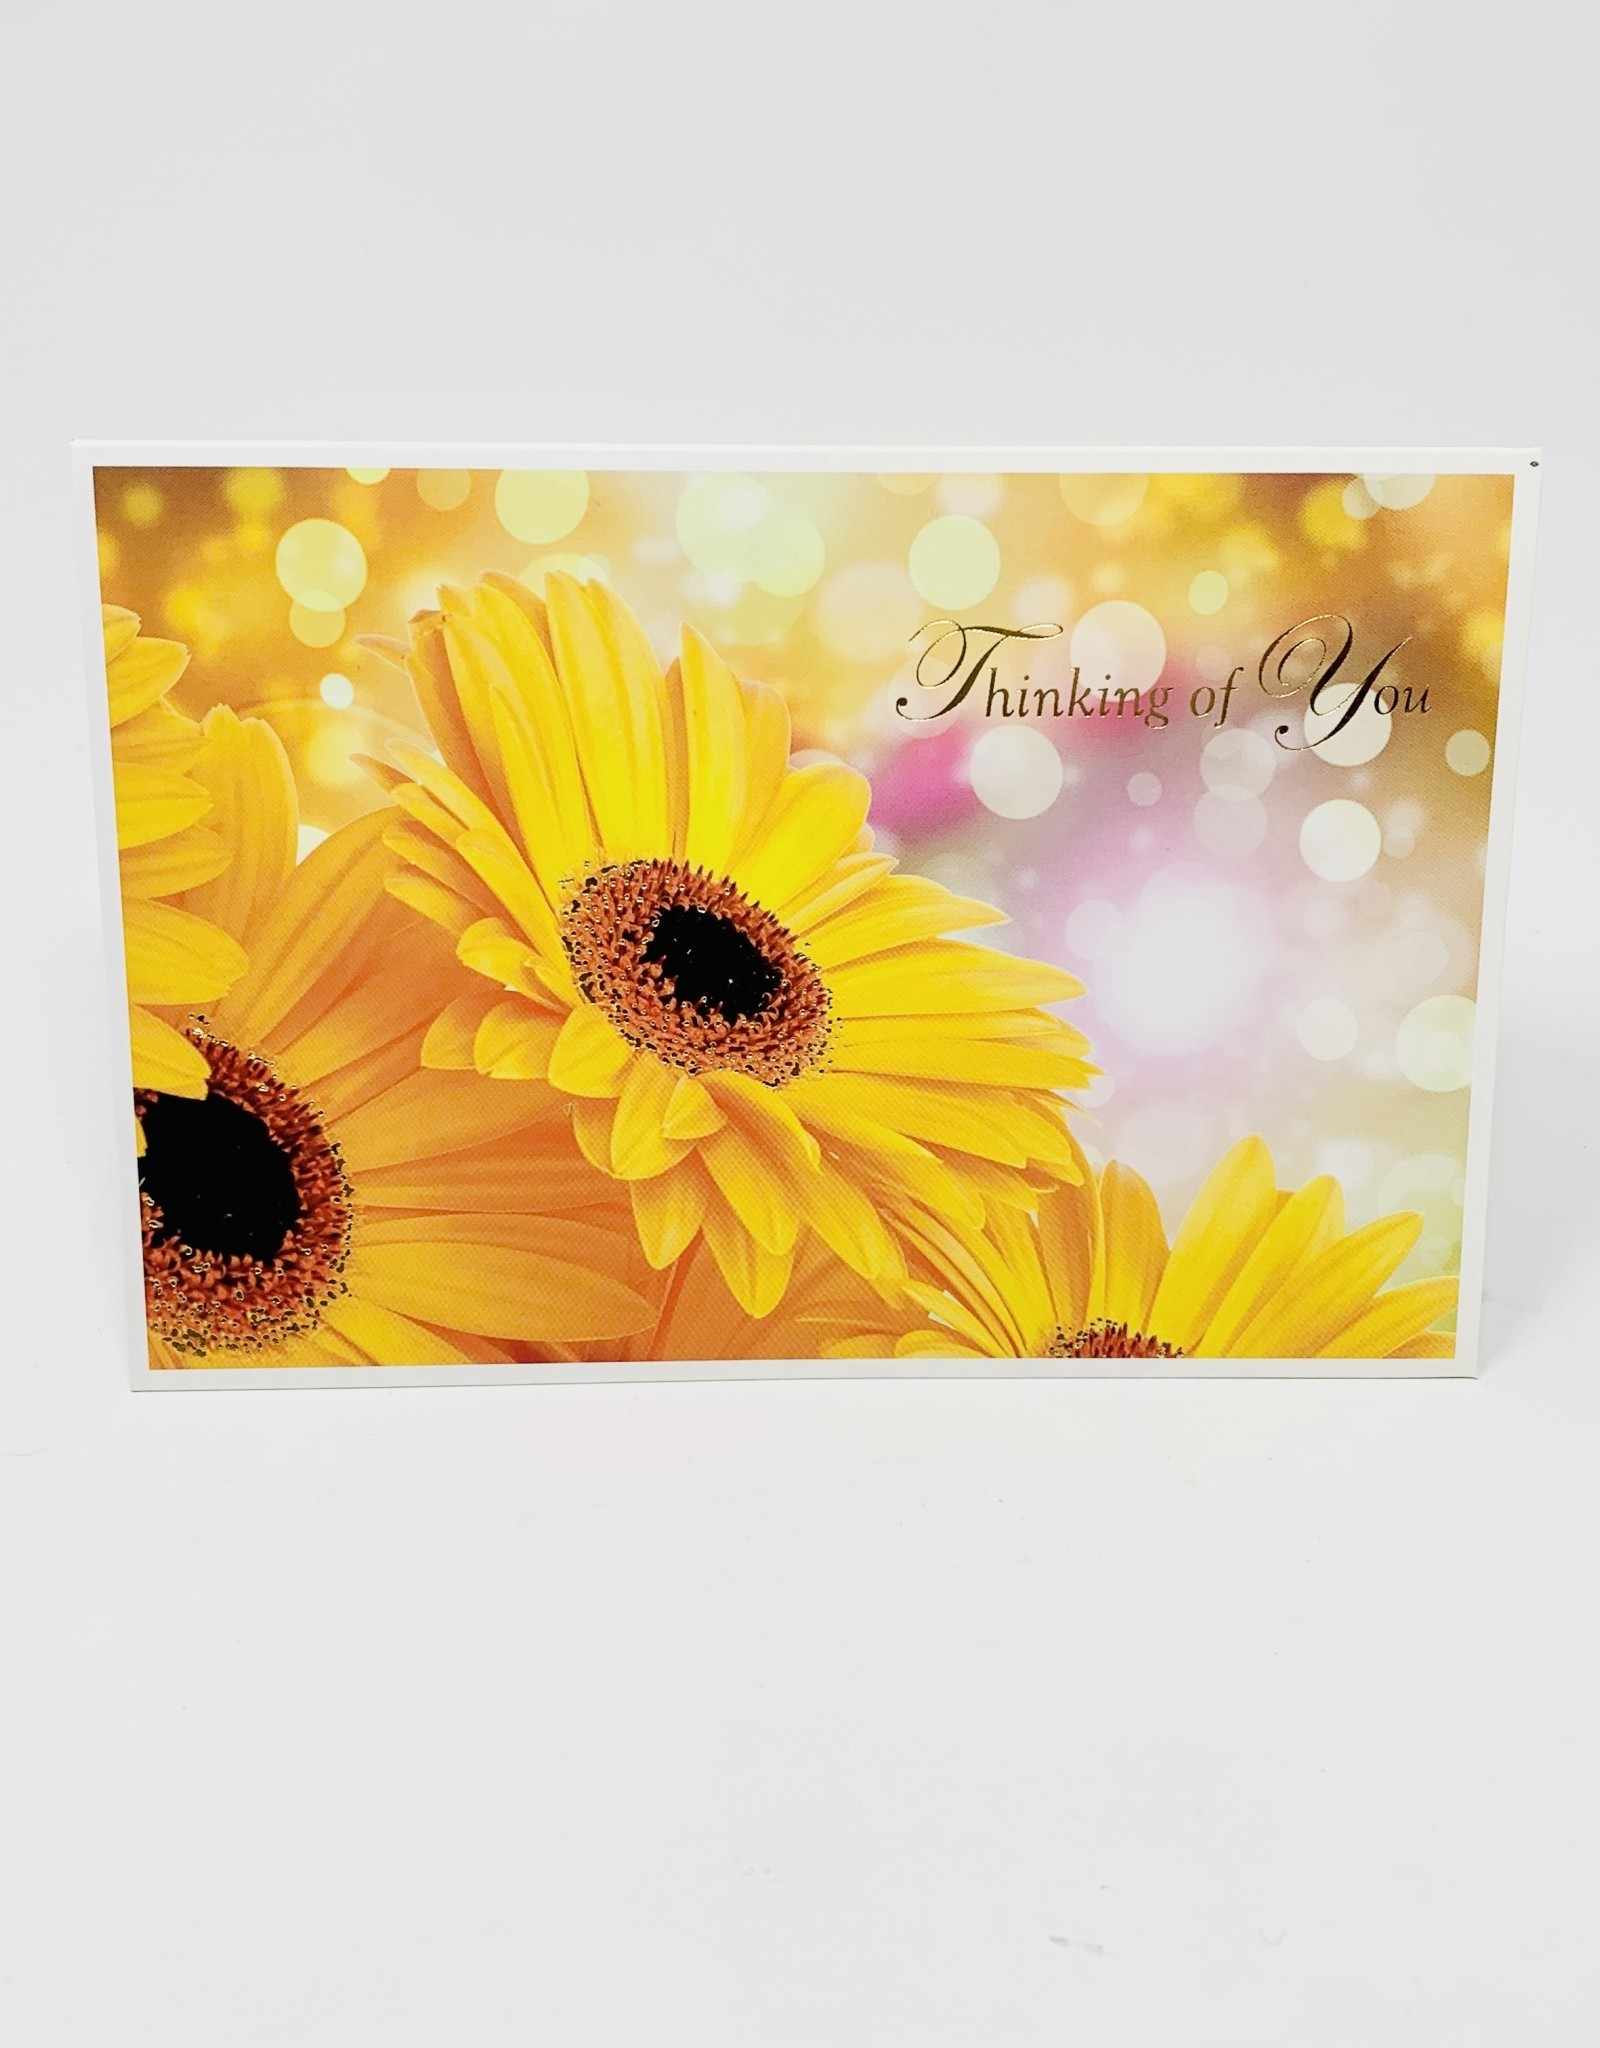 Pictura Gold foil Sunflowers